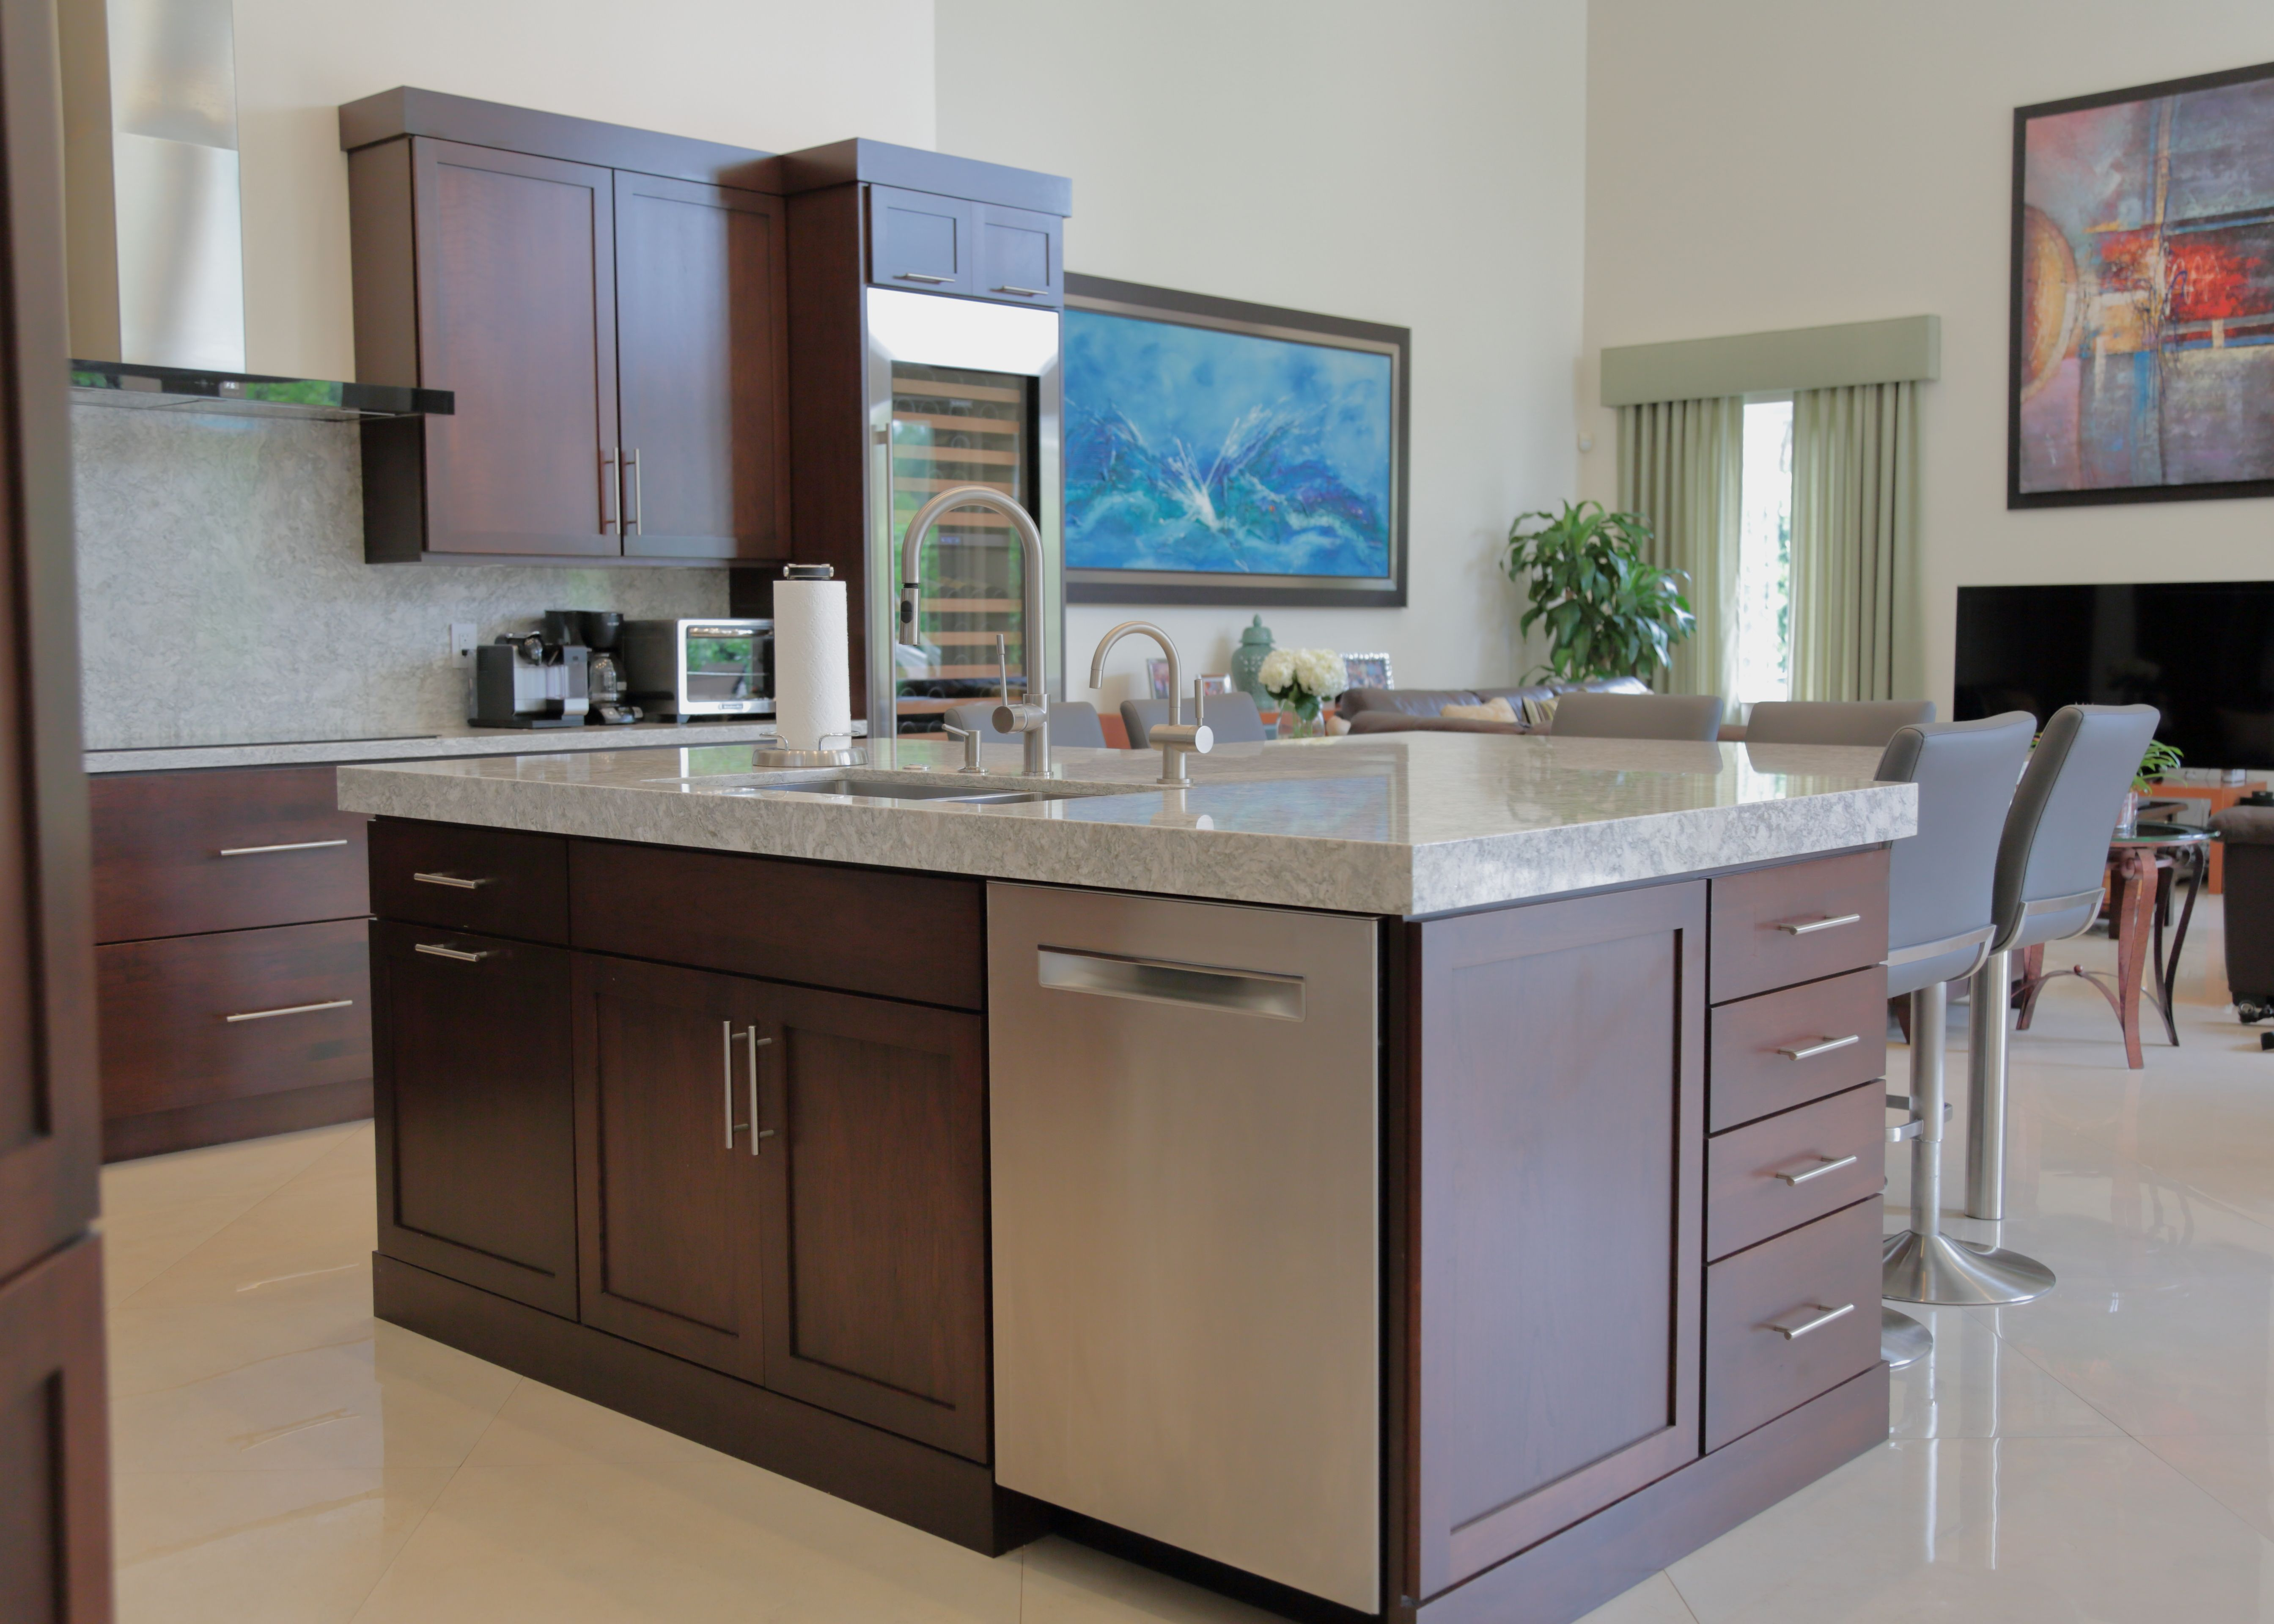 A Gorgeous Kitchen Call Us At 305 234 1990 In 2020 Modern Kitchen Gorgeous Kitchens Kitchen Design